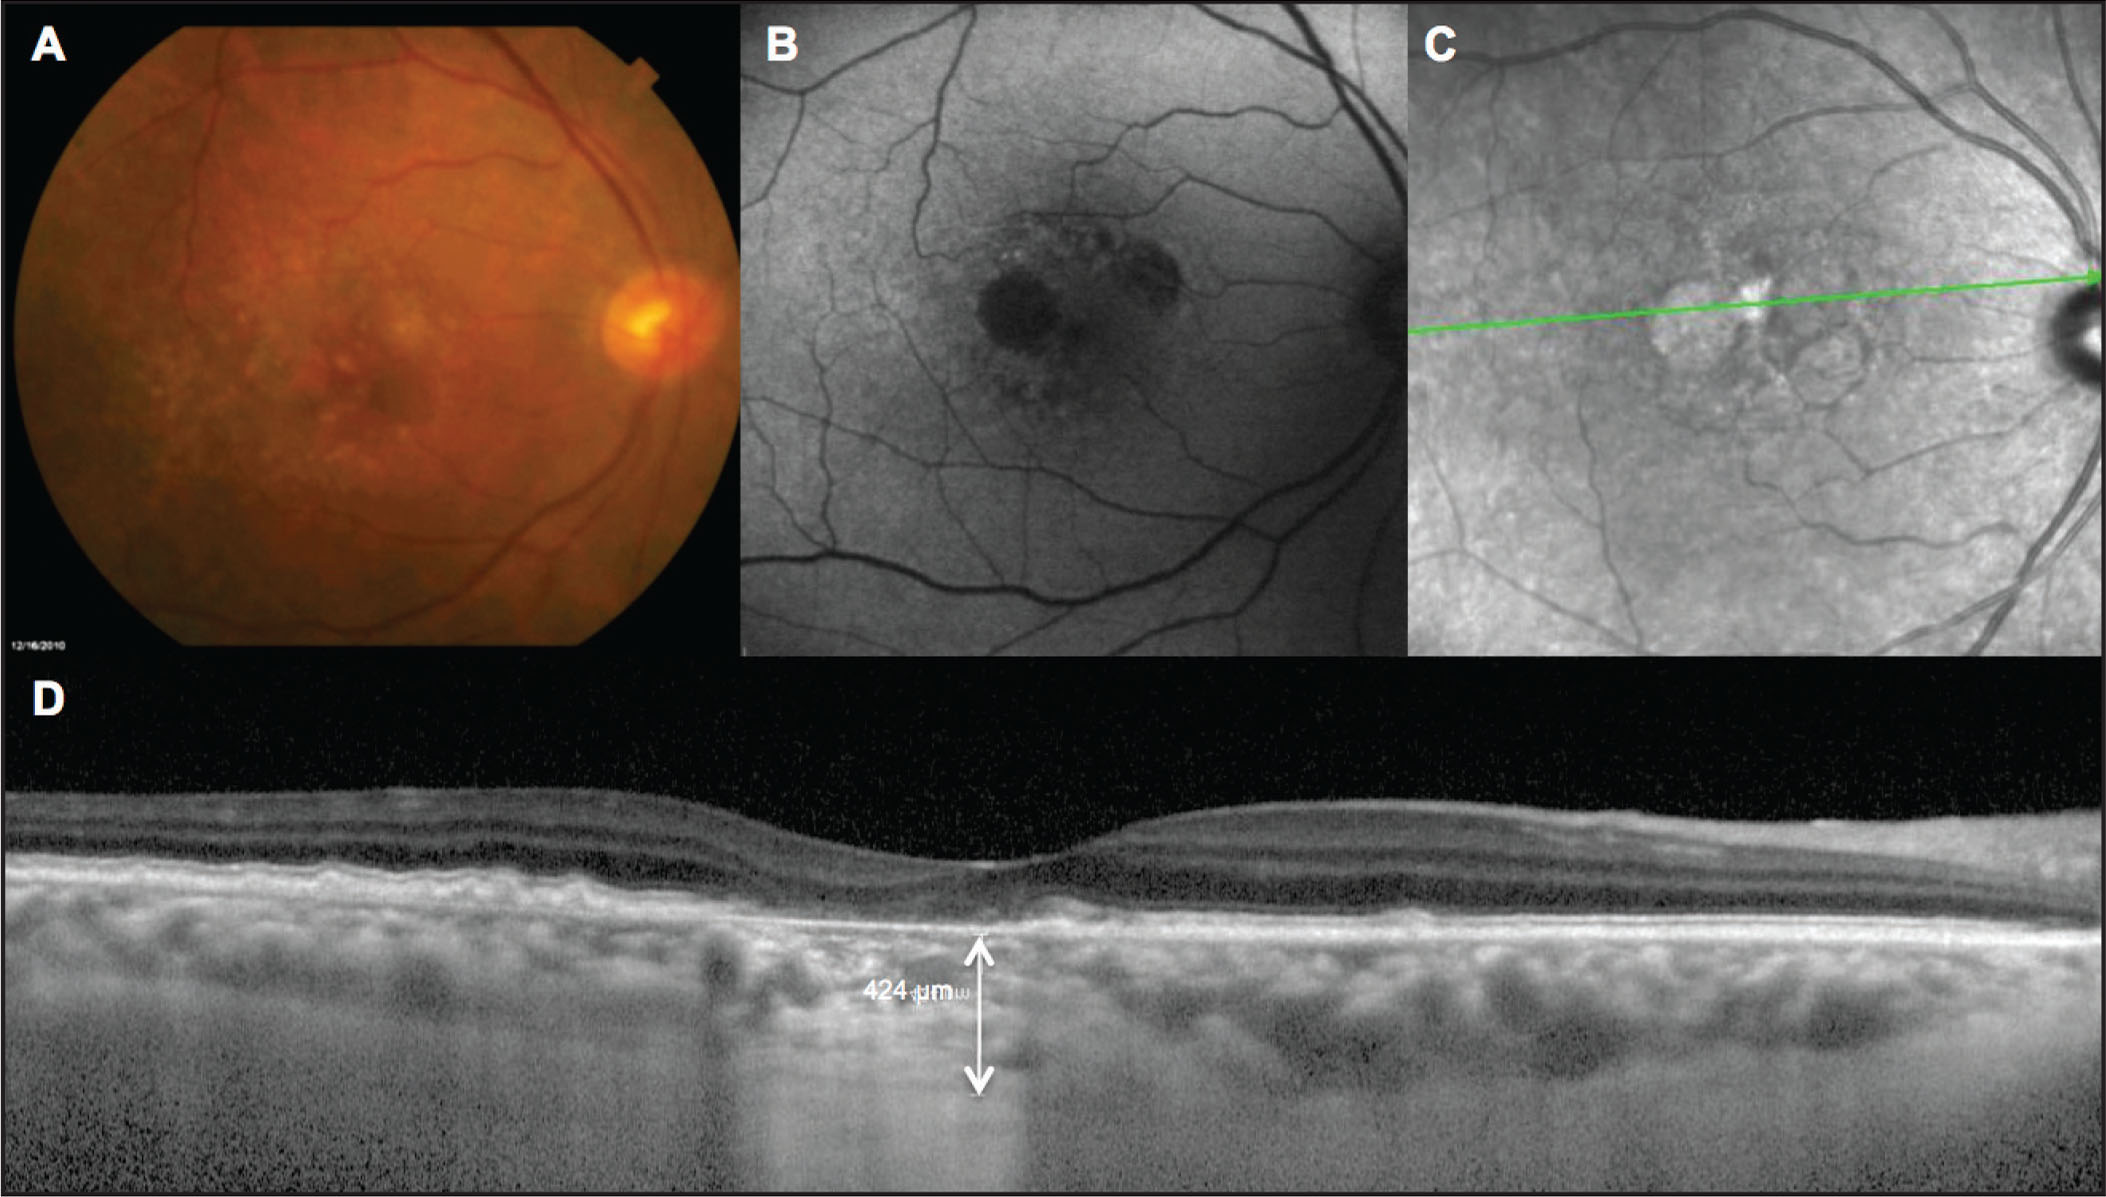 Choroidal thickness (CT) measurement of age-related macular degeneration eye with geographic atrophy in the absence of reticular pseudodrusen in the right eye of a 74-year-old woman. (A) Color fundus image. (B) Fundus autofluorescence image. (C) Infrared reflectance image. (D) Spectral-domain OCT horizontal B-scan with subfoveal CT measurement corresponding to 424 µm.